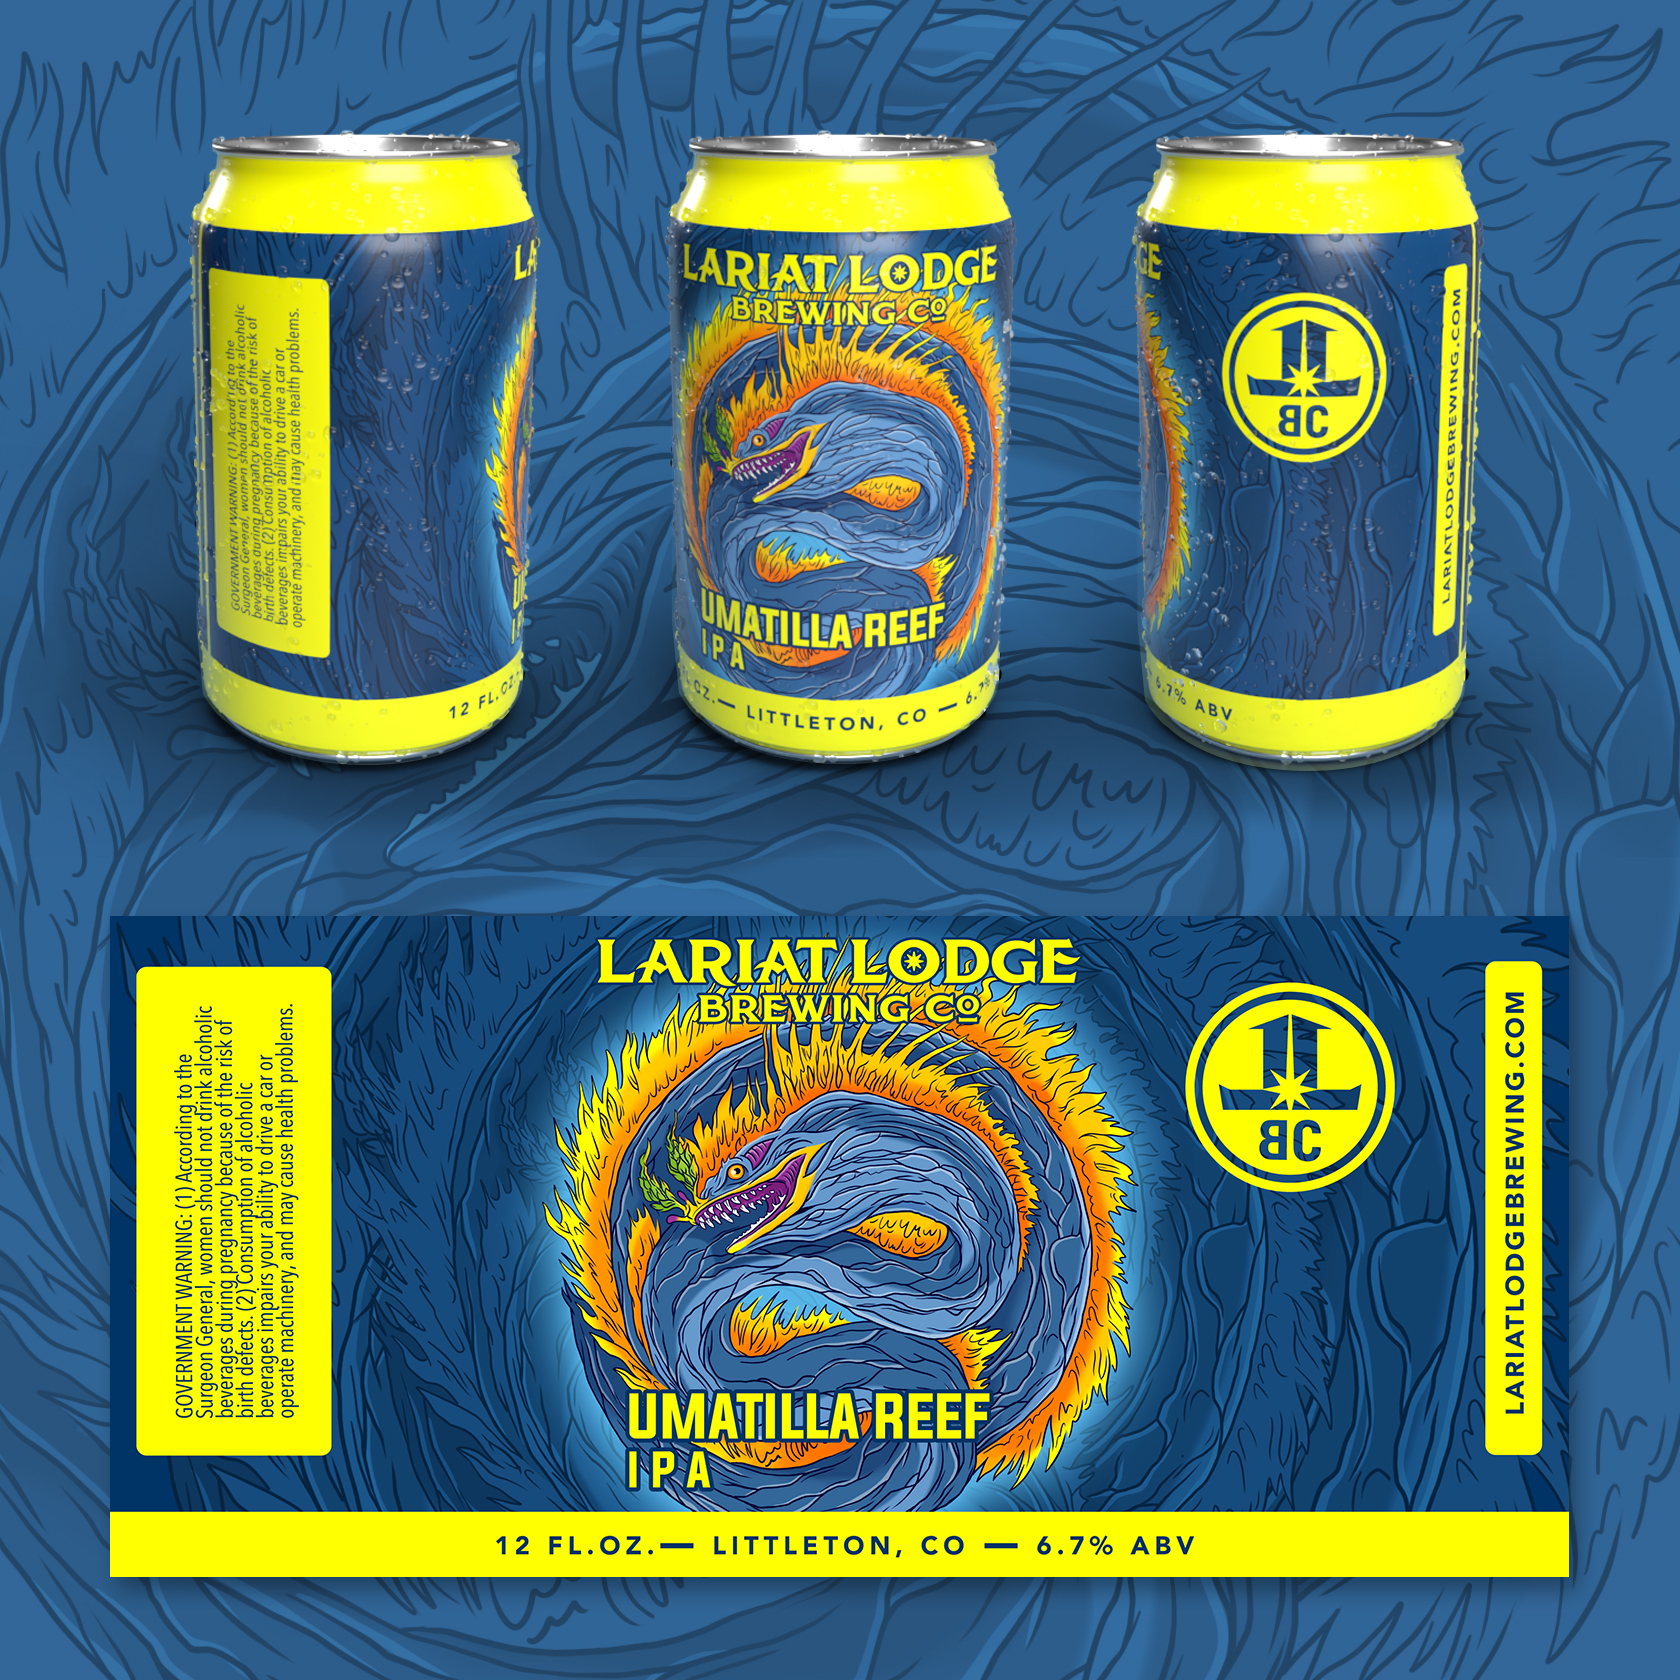 ipa beer label design, beer label design, colorado beer label, colorado beer, colorado microbeer, amber beer label, beer label design, beer can label design, hi-five design